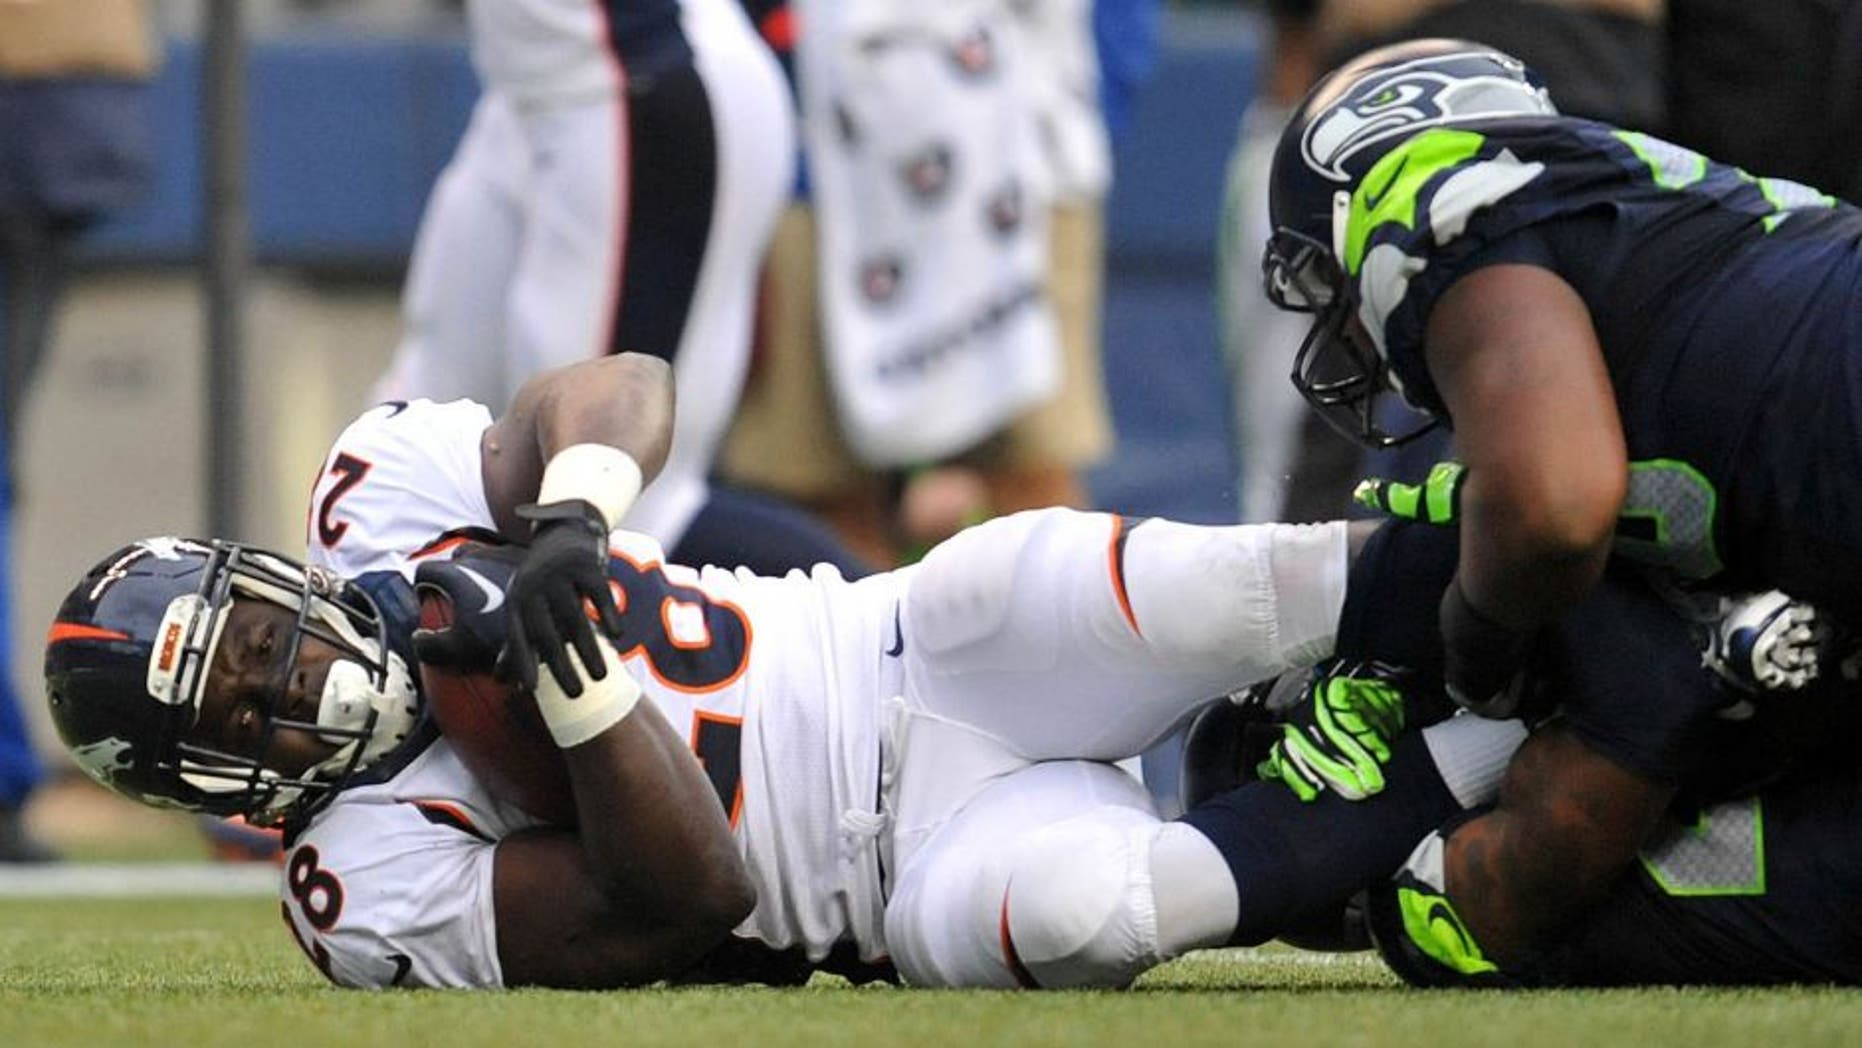 August 14, 2015; Seattle, WA, USA; Denver Broncos running back Montee Ball (28) is brought down by the Seattle Seahawks defense during the first half in a preseason NFL football game at CenturyLink Field. Mandatory Credit: Gary A. Vasquez-USA TODAY Sports